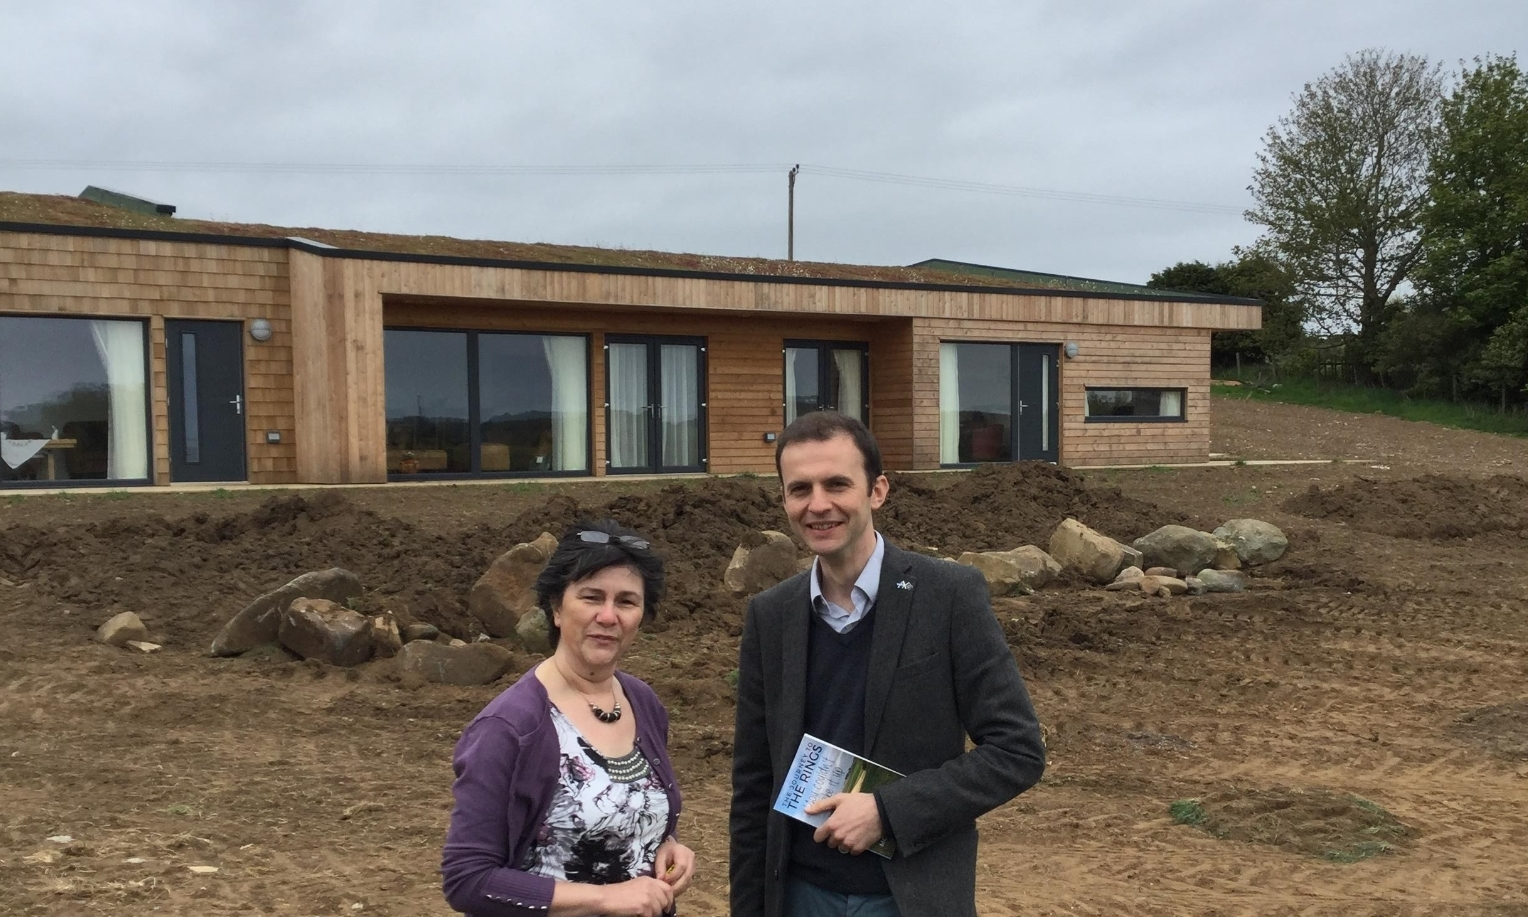 Moira Henderson with North East Fife MP Stephen Gethins.